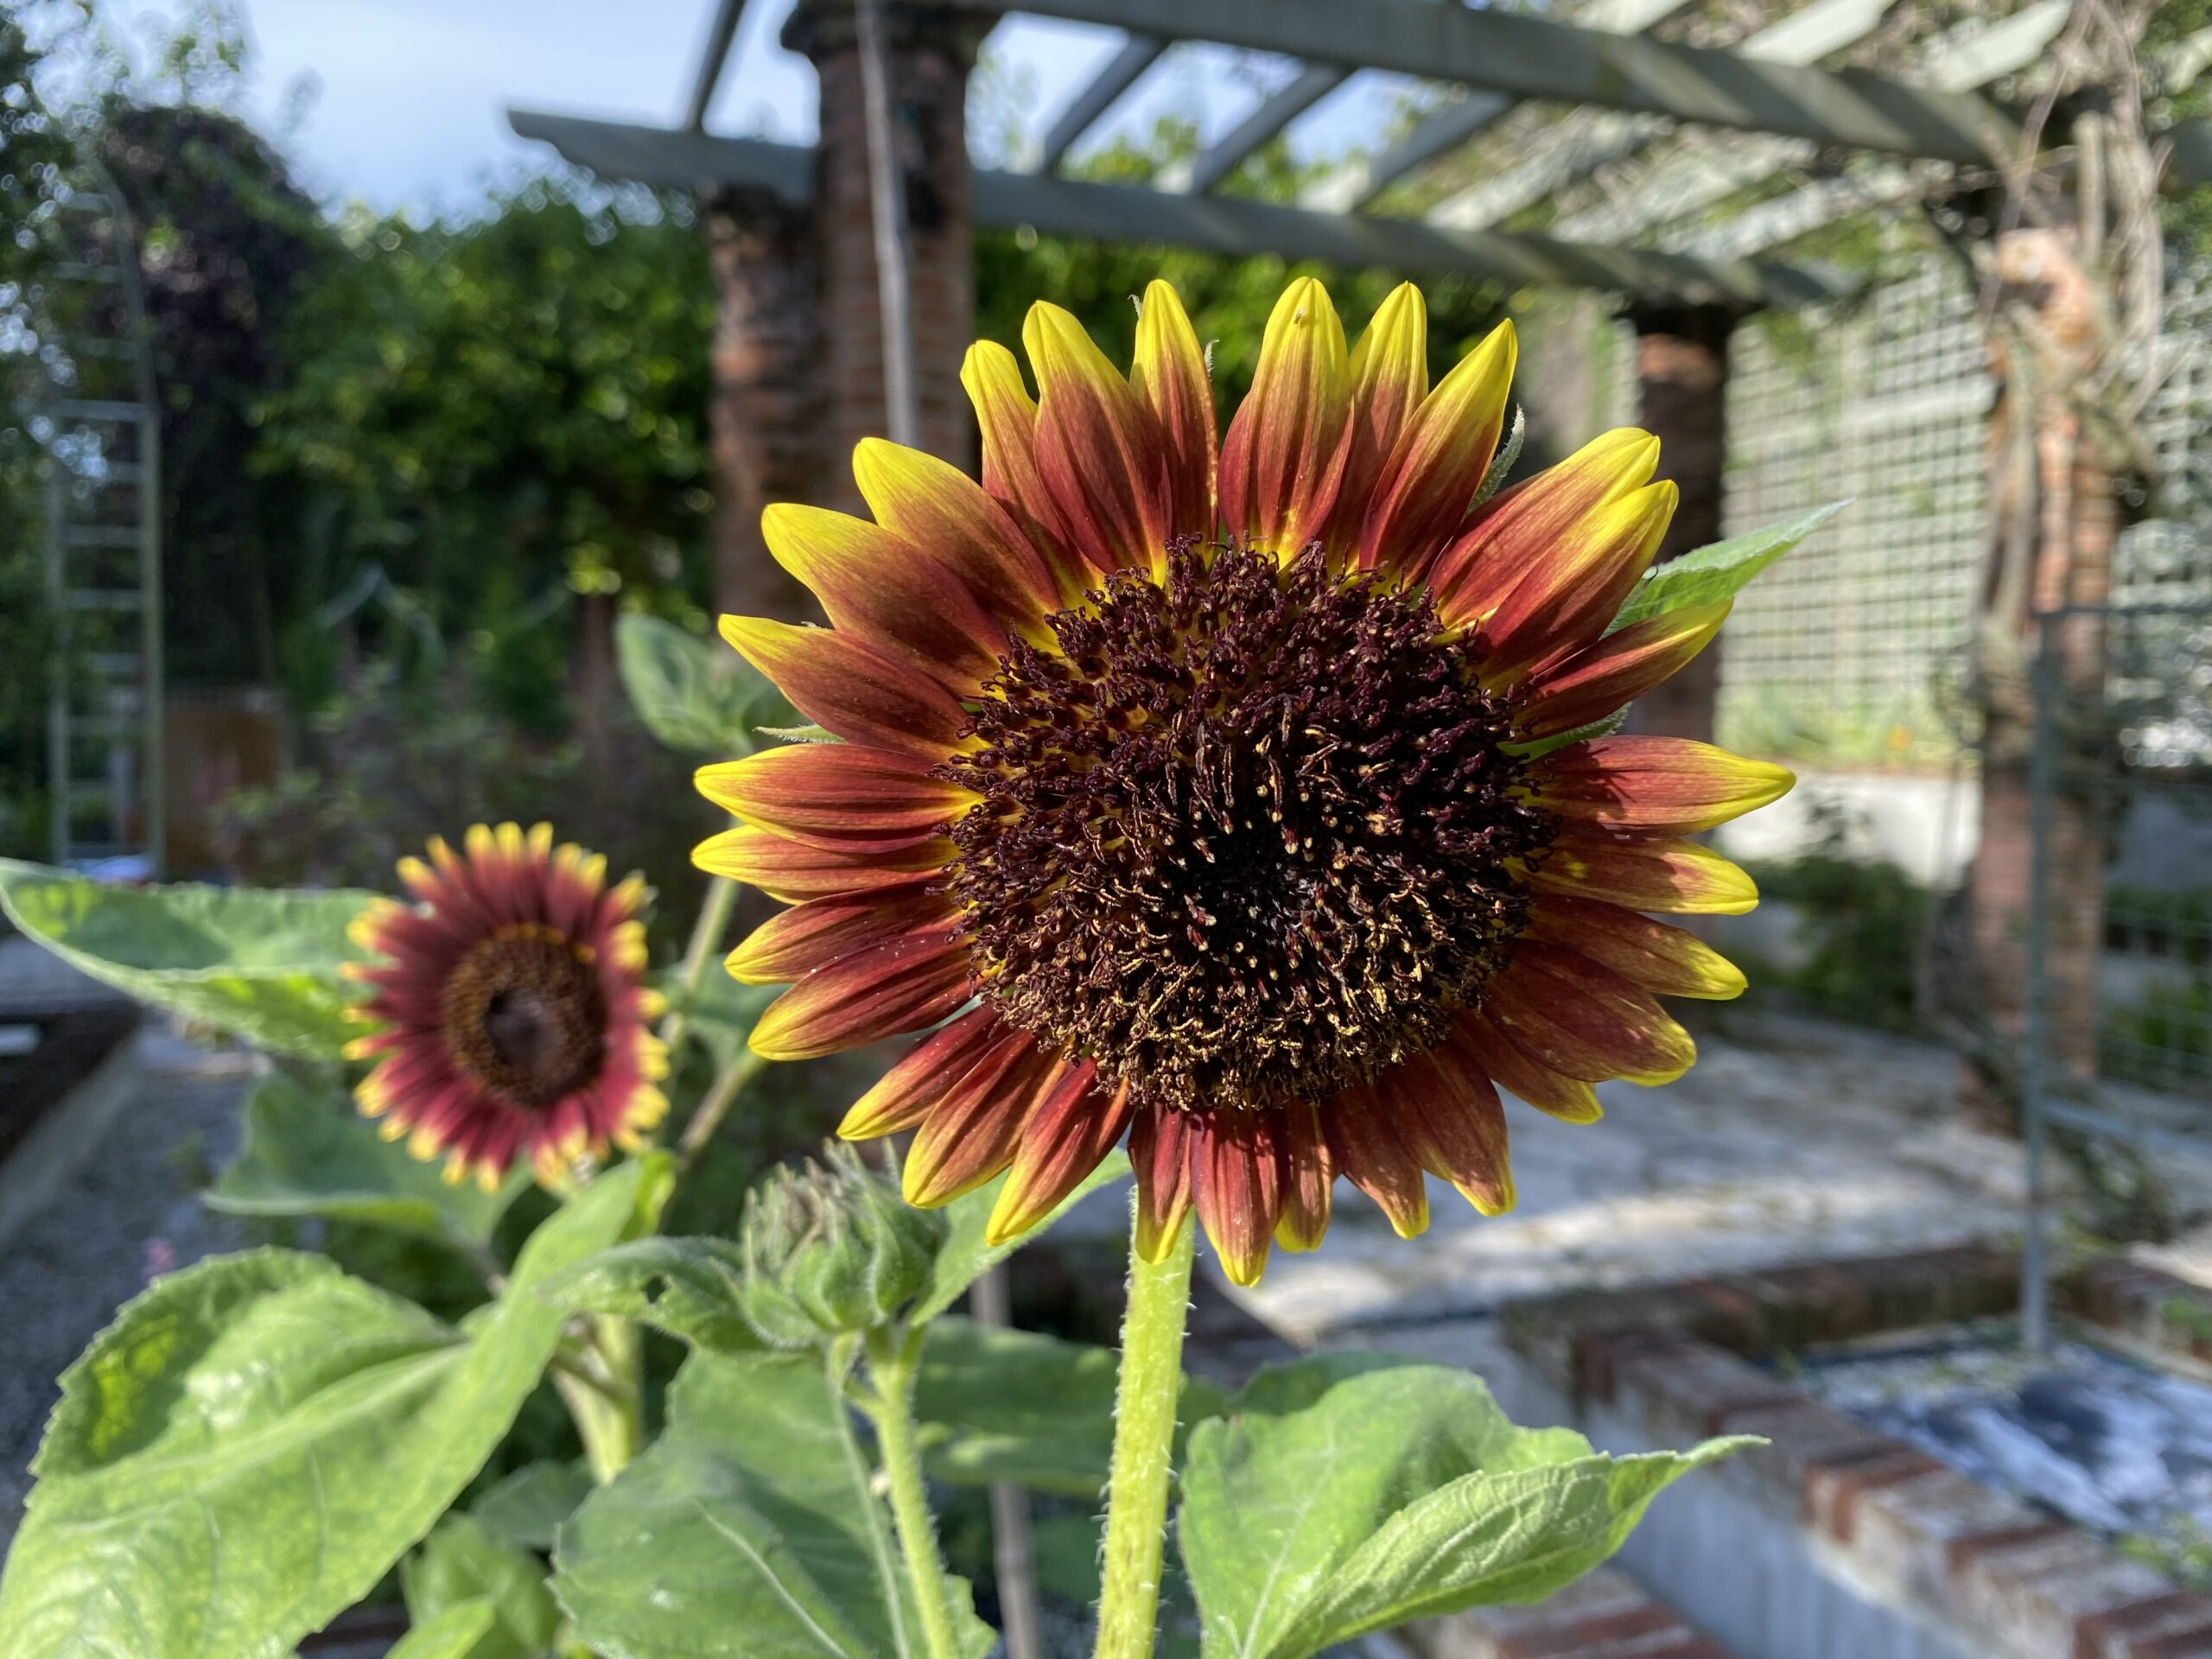 Two small purple and yellow sunflowers